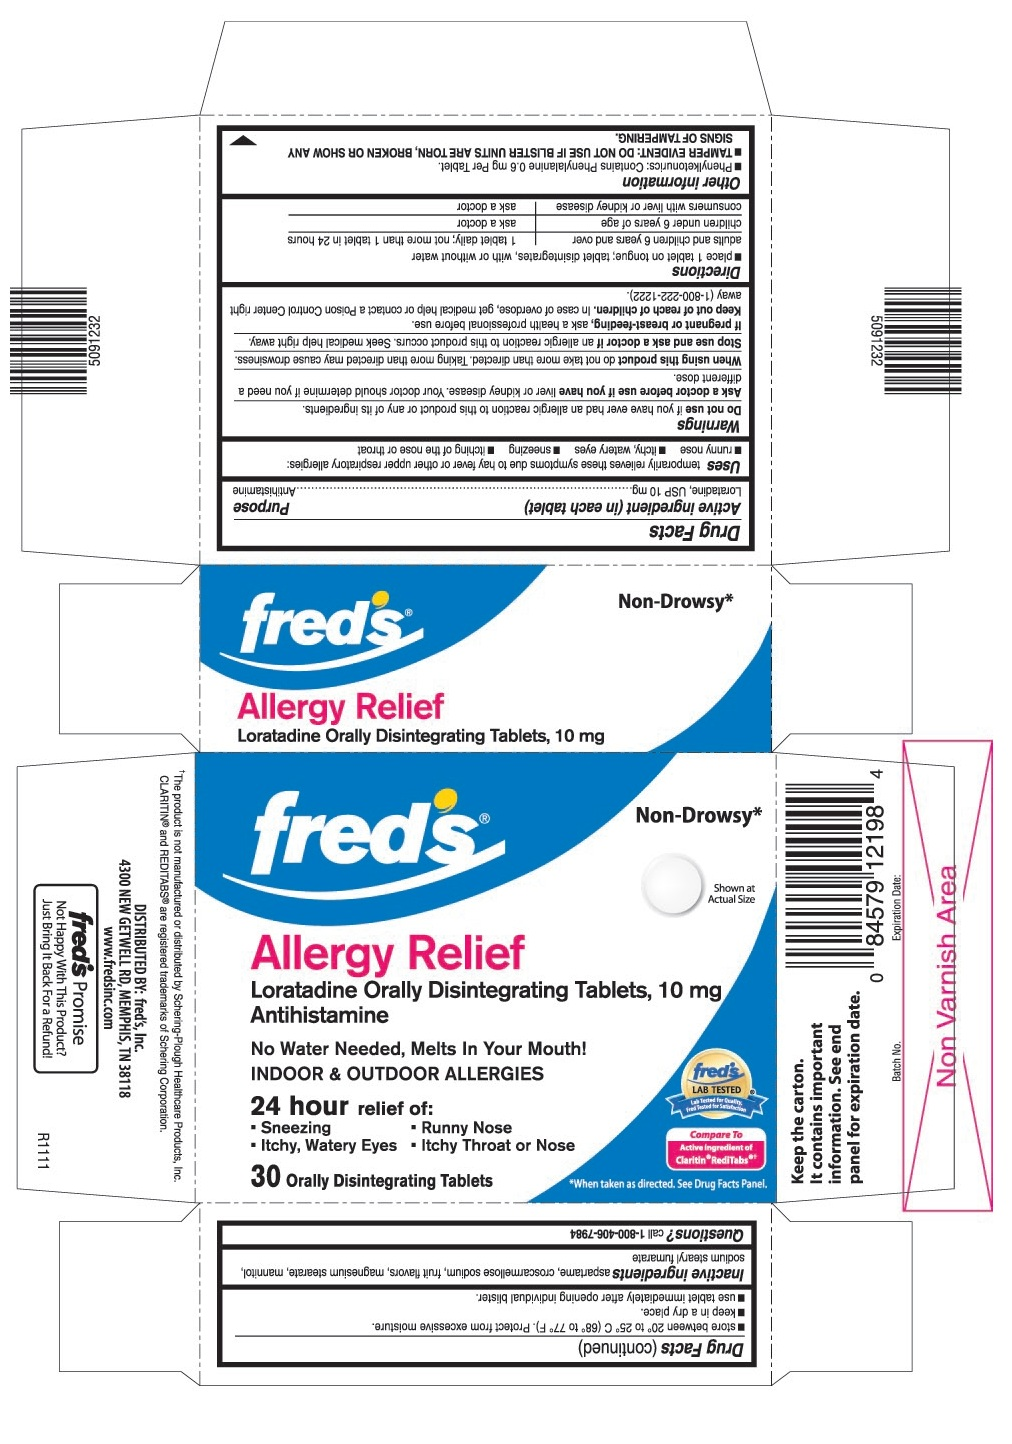 This is the 30 count blister carton label for Fred's Loratadine ODT, 10 mg.